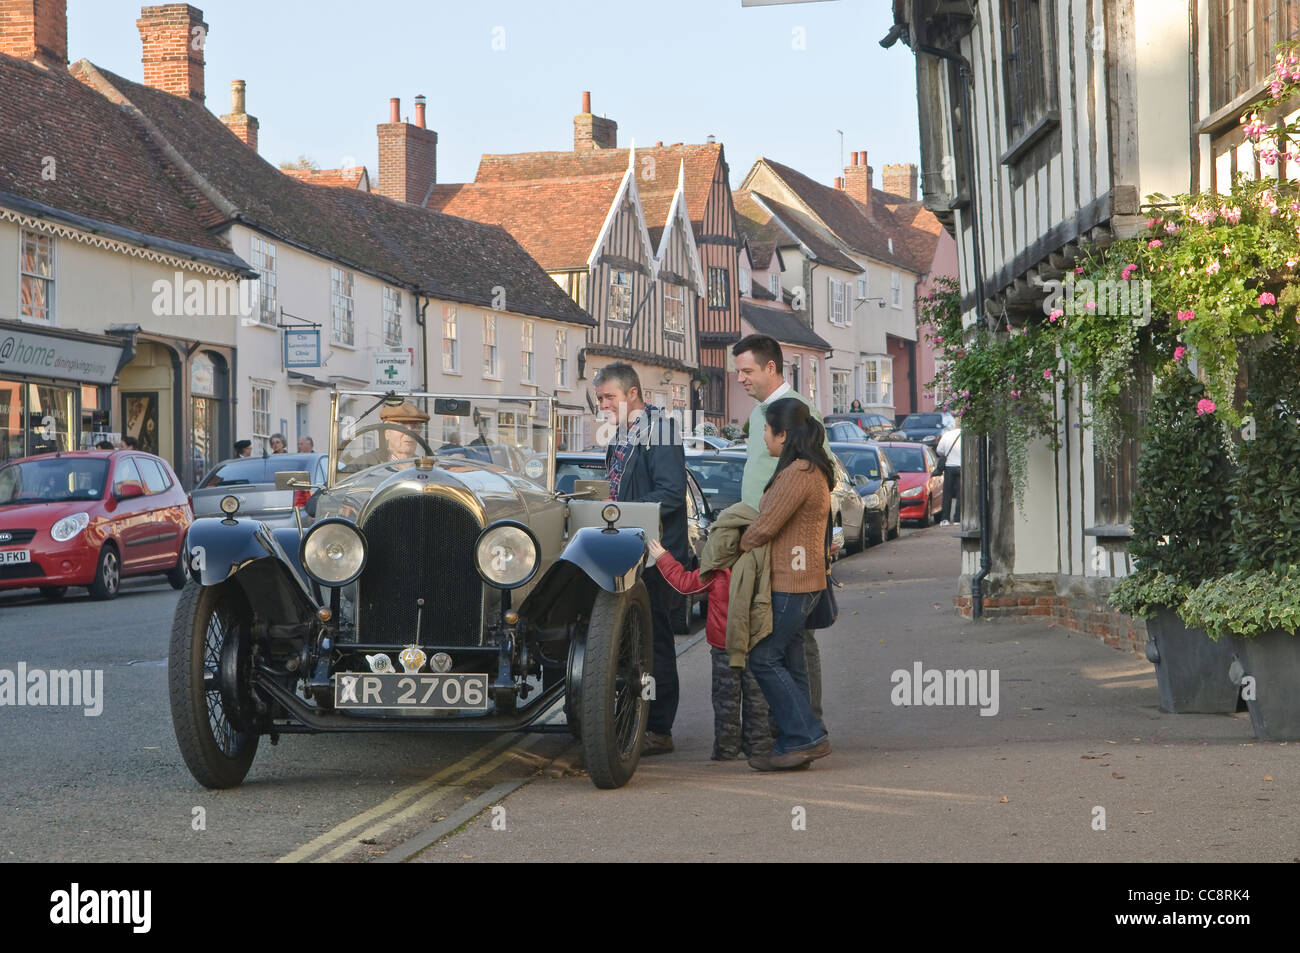 Classic vintage Bentley parking in the front of Swan Hotel in Lavenham, Suffolk, UK. - Stock Image